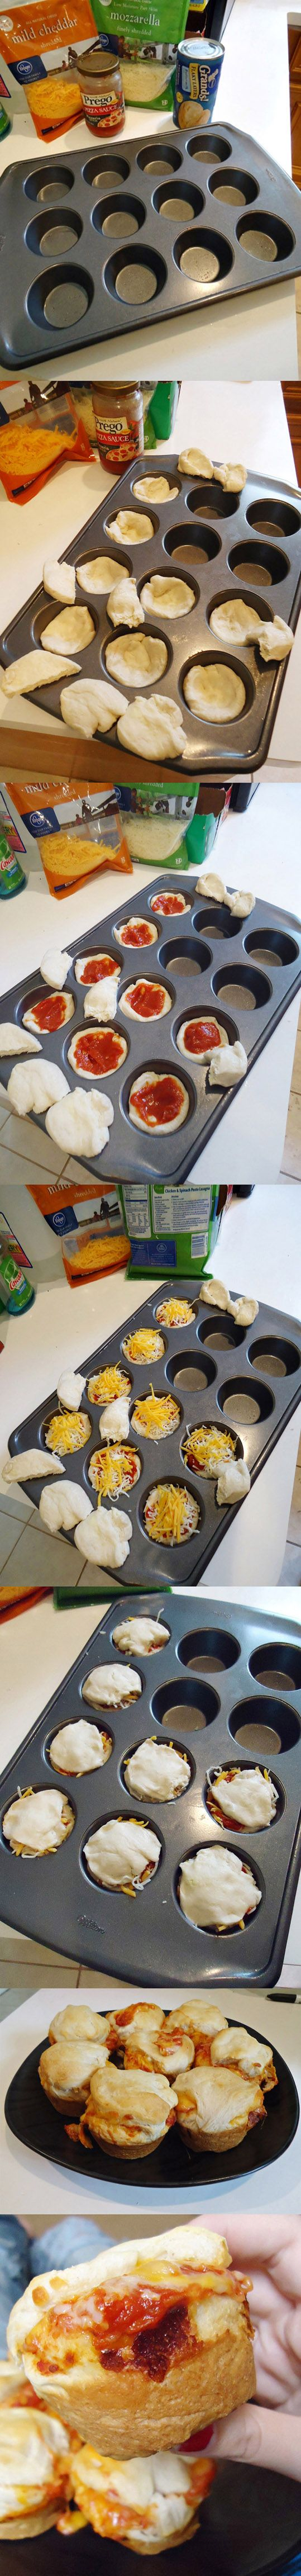 Drinks  Pizza Cupcakes – How Cool is That?  Sep 9, 2012 in For Kids, Pastries Tags: Cupcakes, Pizza  Large Format